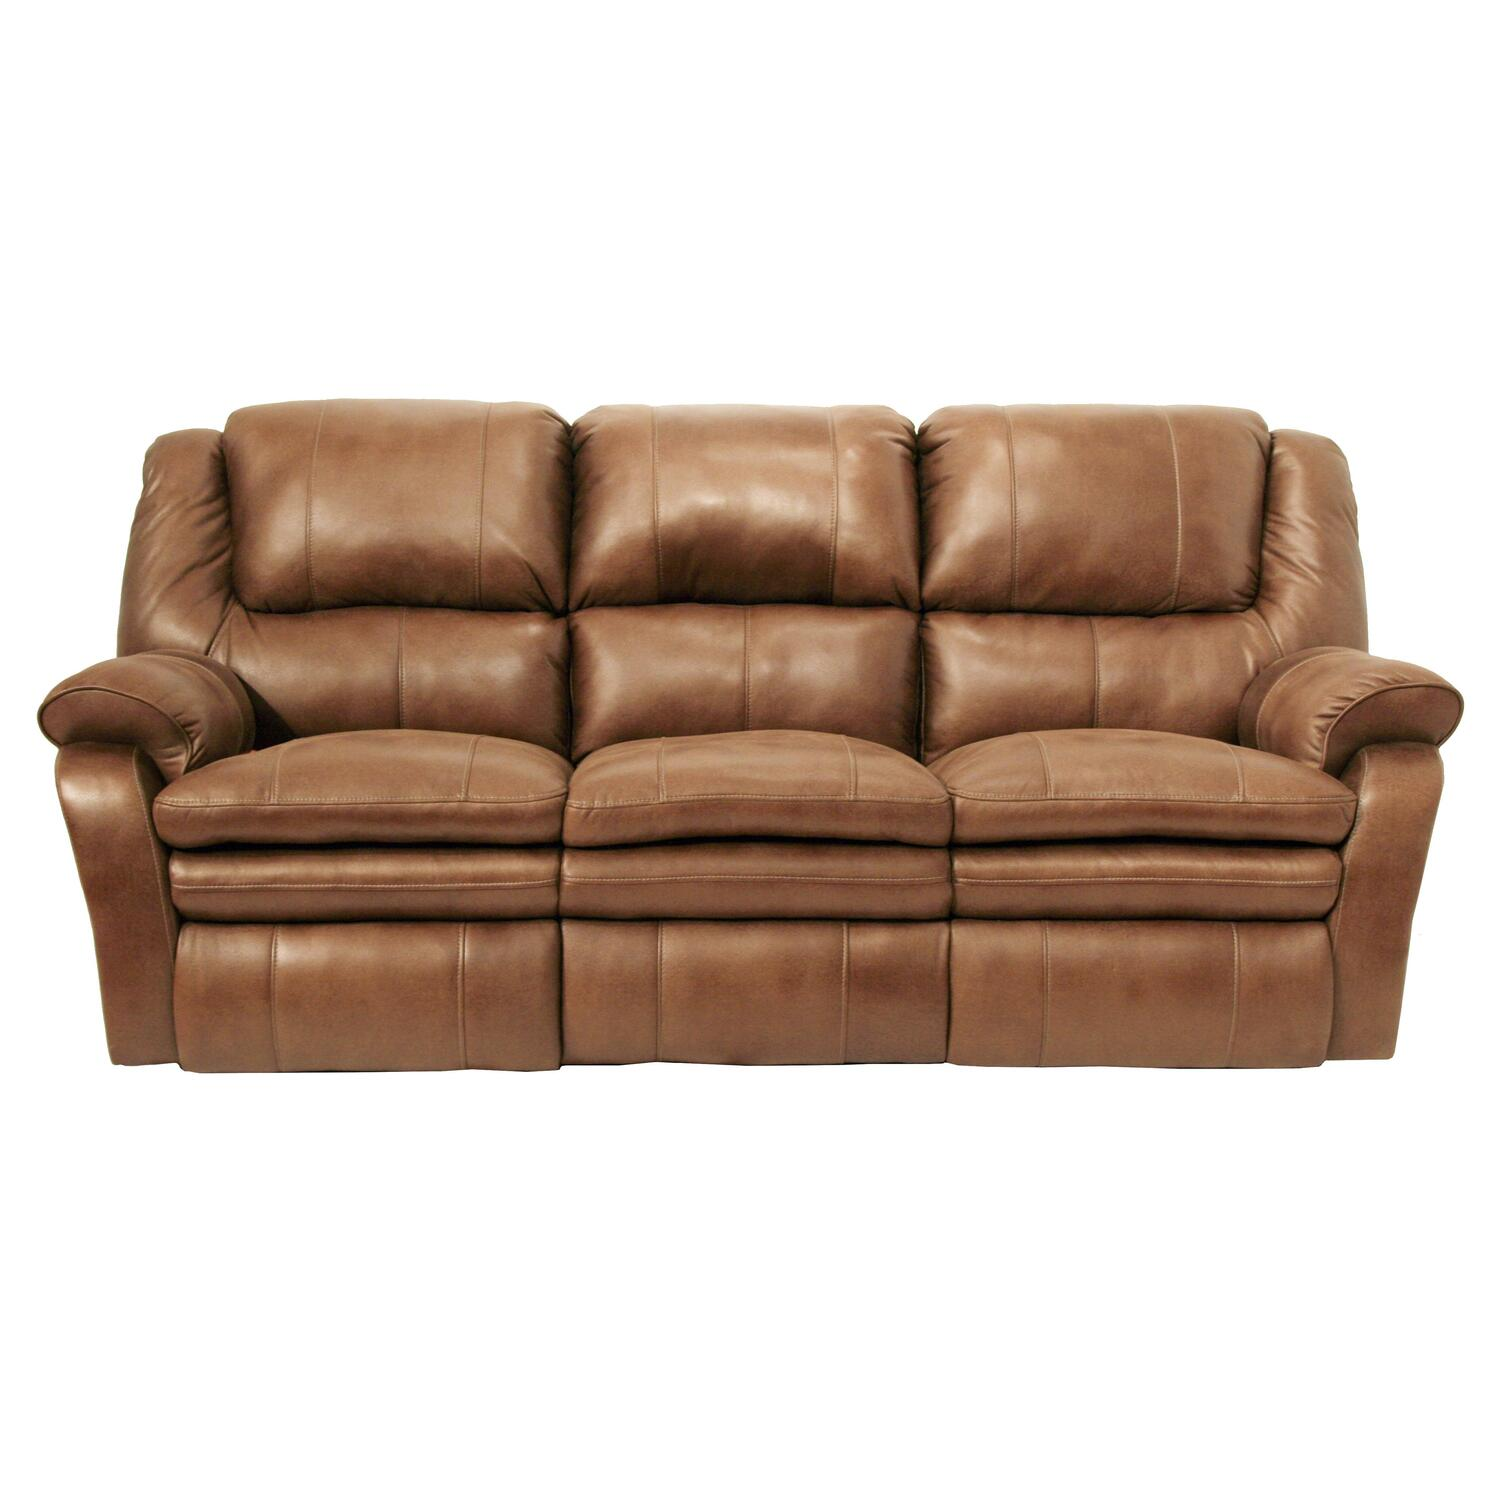 Cordoba reclining sofa ojcommerce for Sofa ideal cordoba